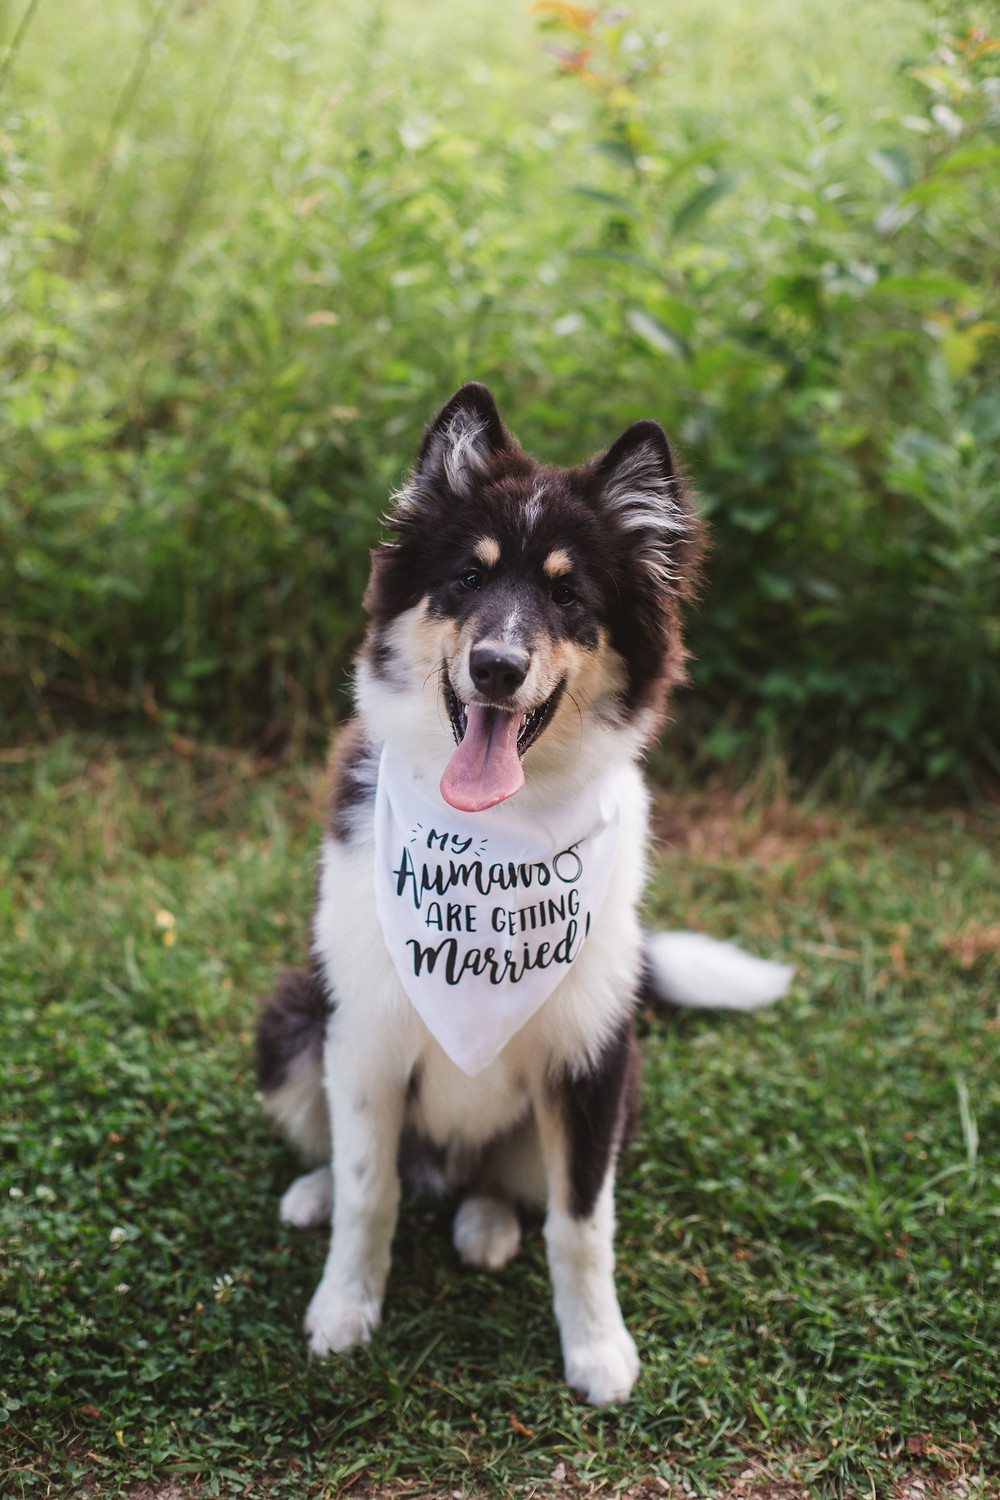 Dog wearing My Humans are Getting Married Bandana